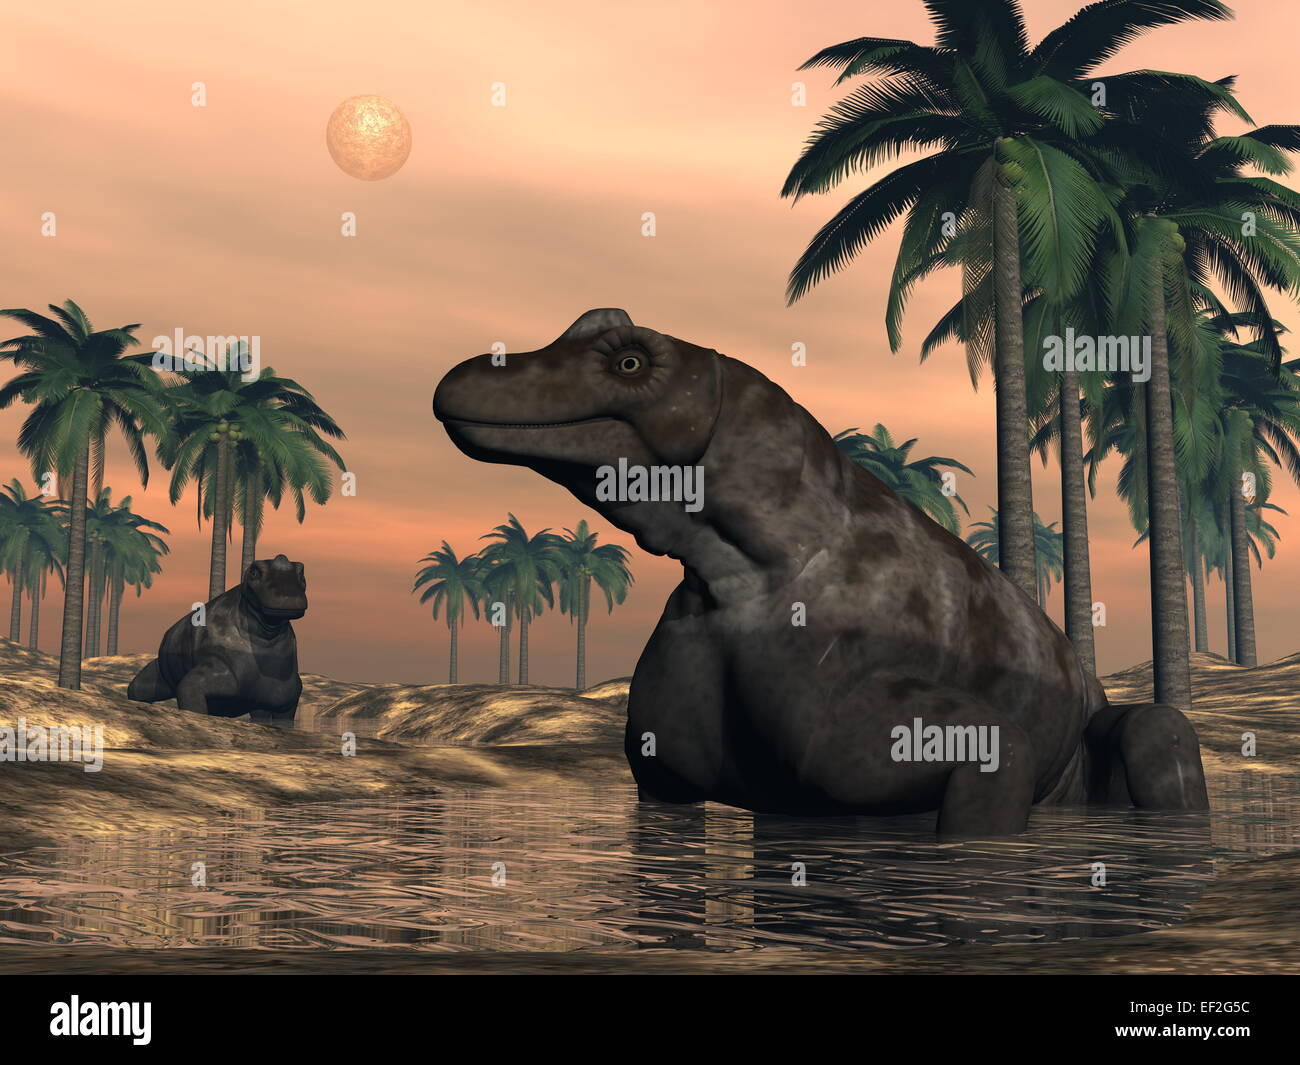 Keratocephalus dinosaurs having bath in the desert with palm trees - 3D render Stock Photo